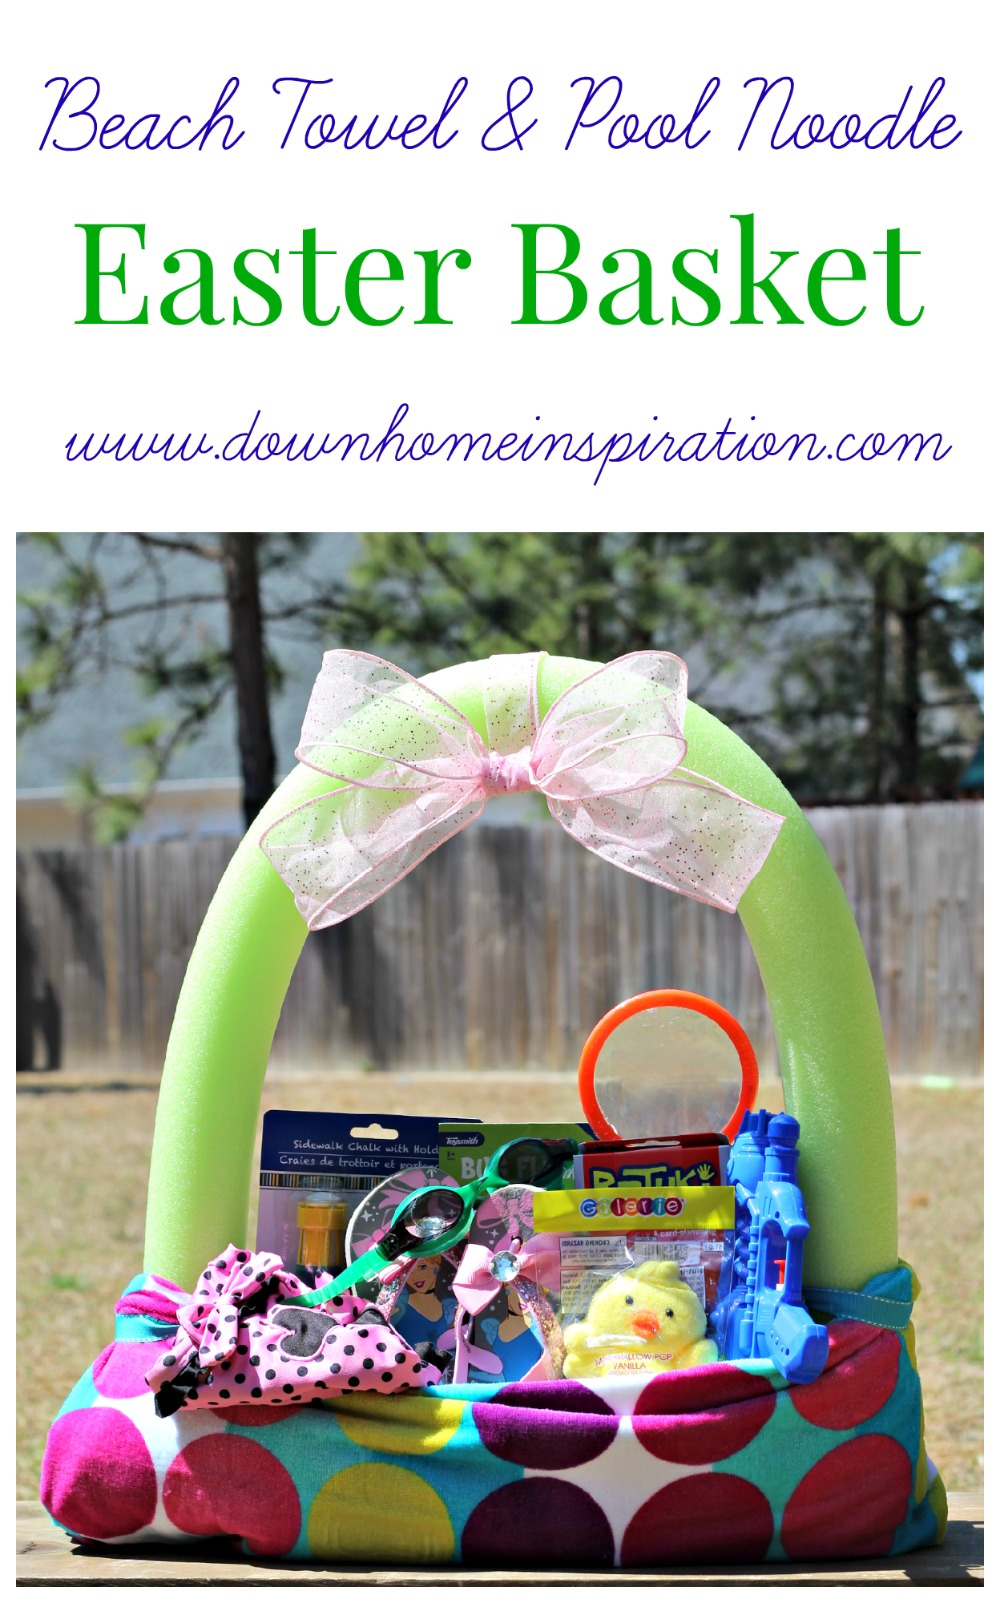 Make A Fun Easter Basket Using A Beach Towel And Pool Noodle  Down Home  Inspiration